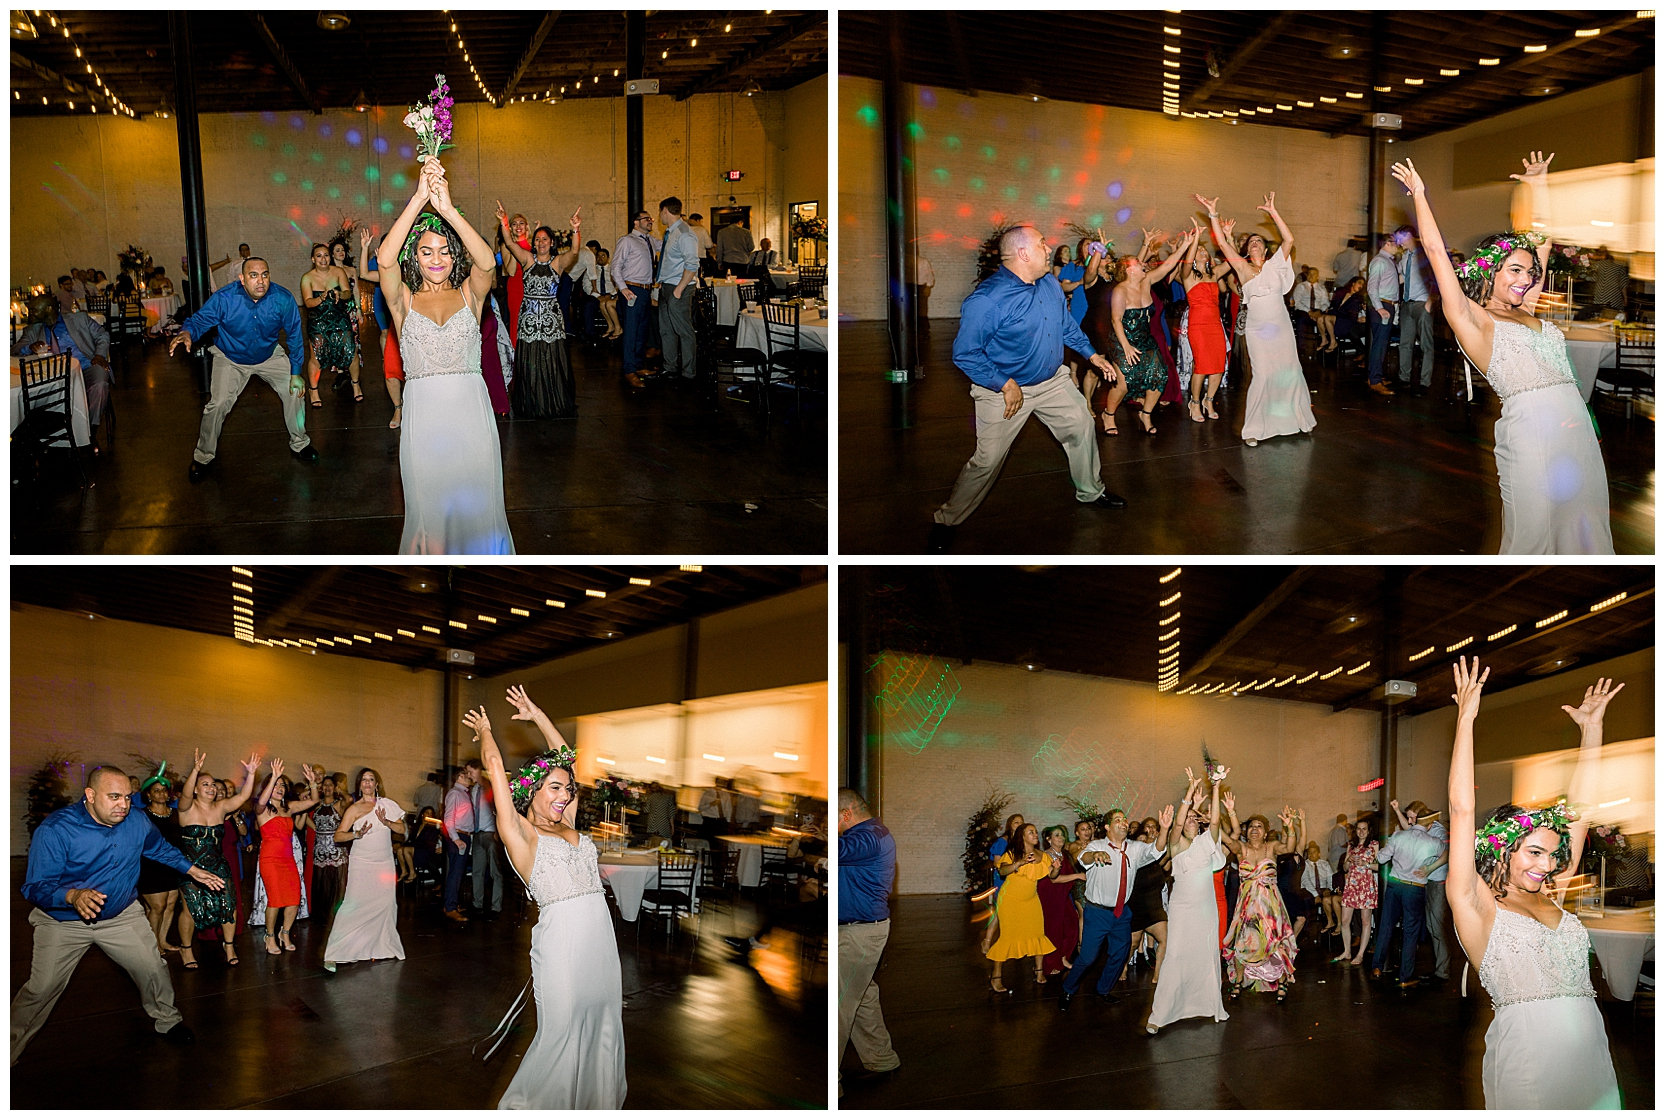 jessicafredericks_lakeland_tampa_wedding_purple_crazy hour_0106.jpg